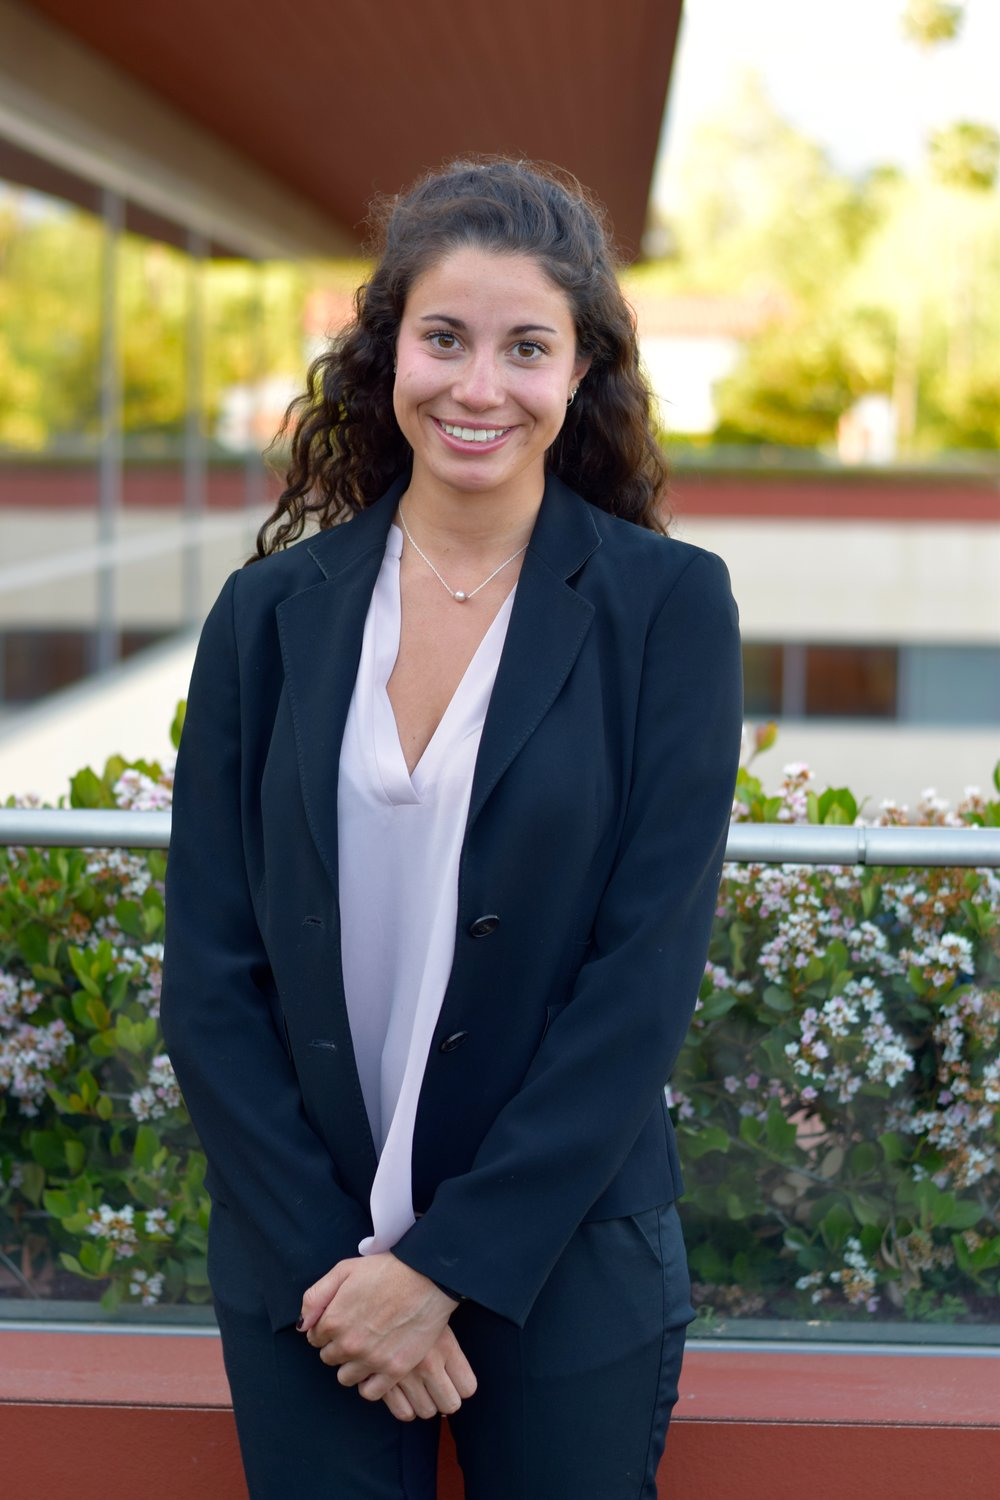 Lena Mersereau - Events Commissioner